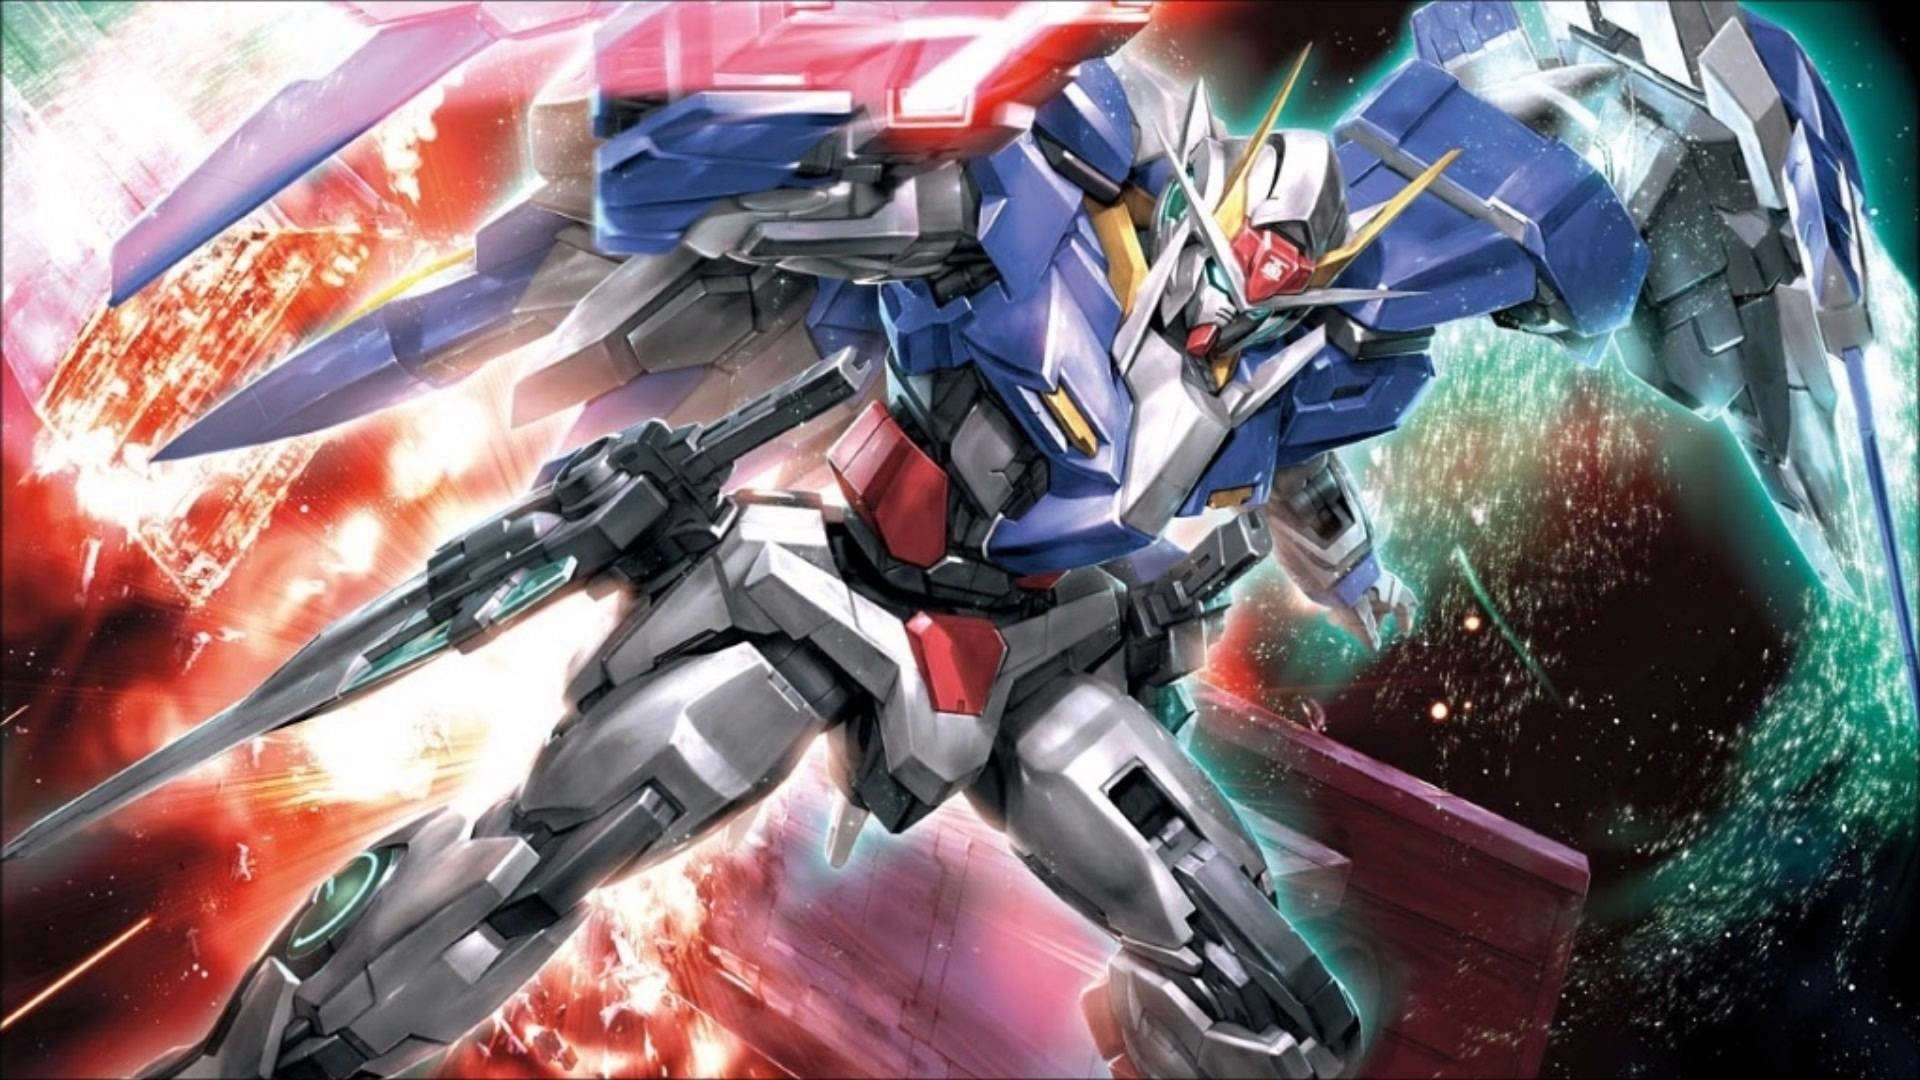 gundam 00 raiser wallpaper (54+ images)